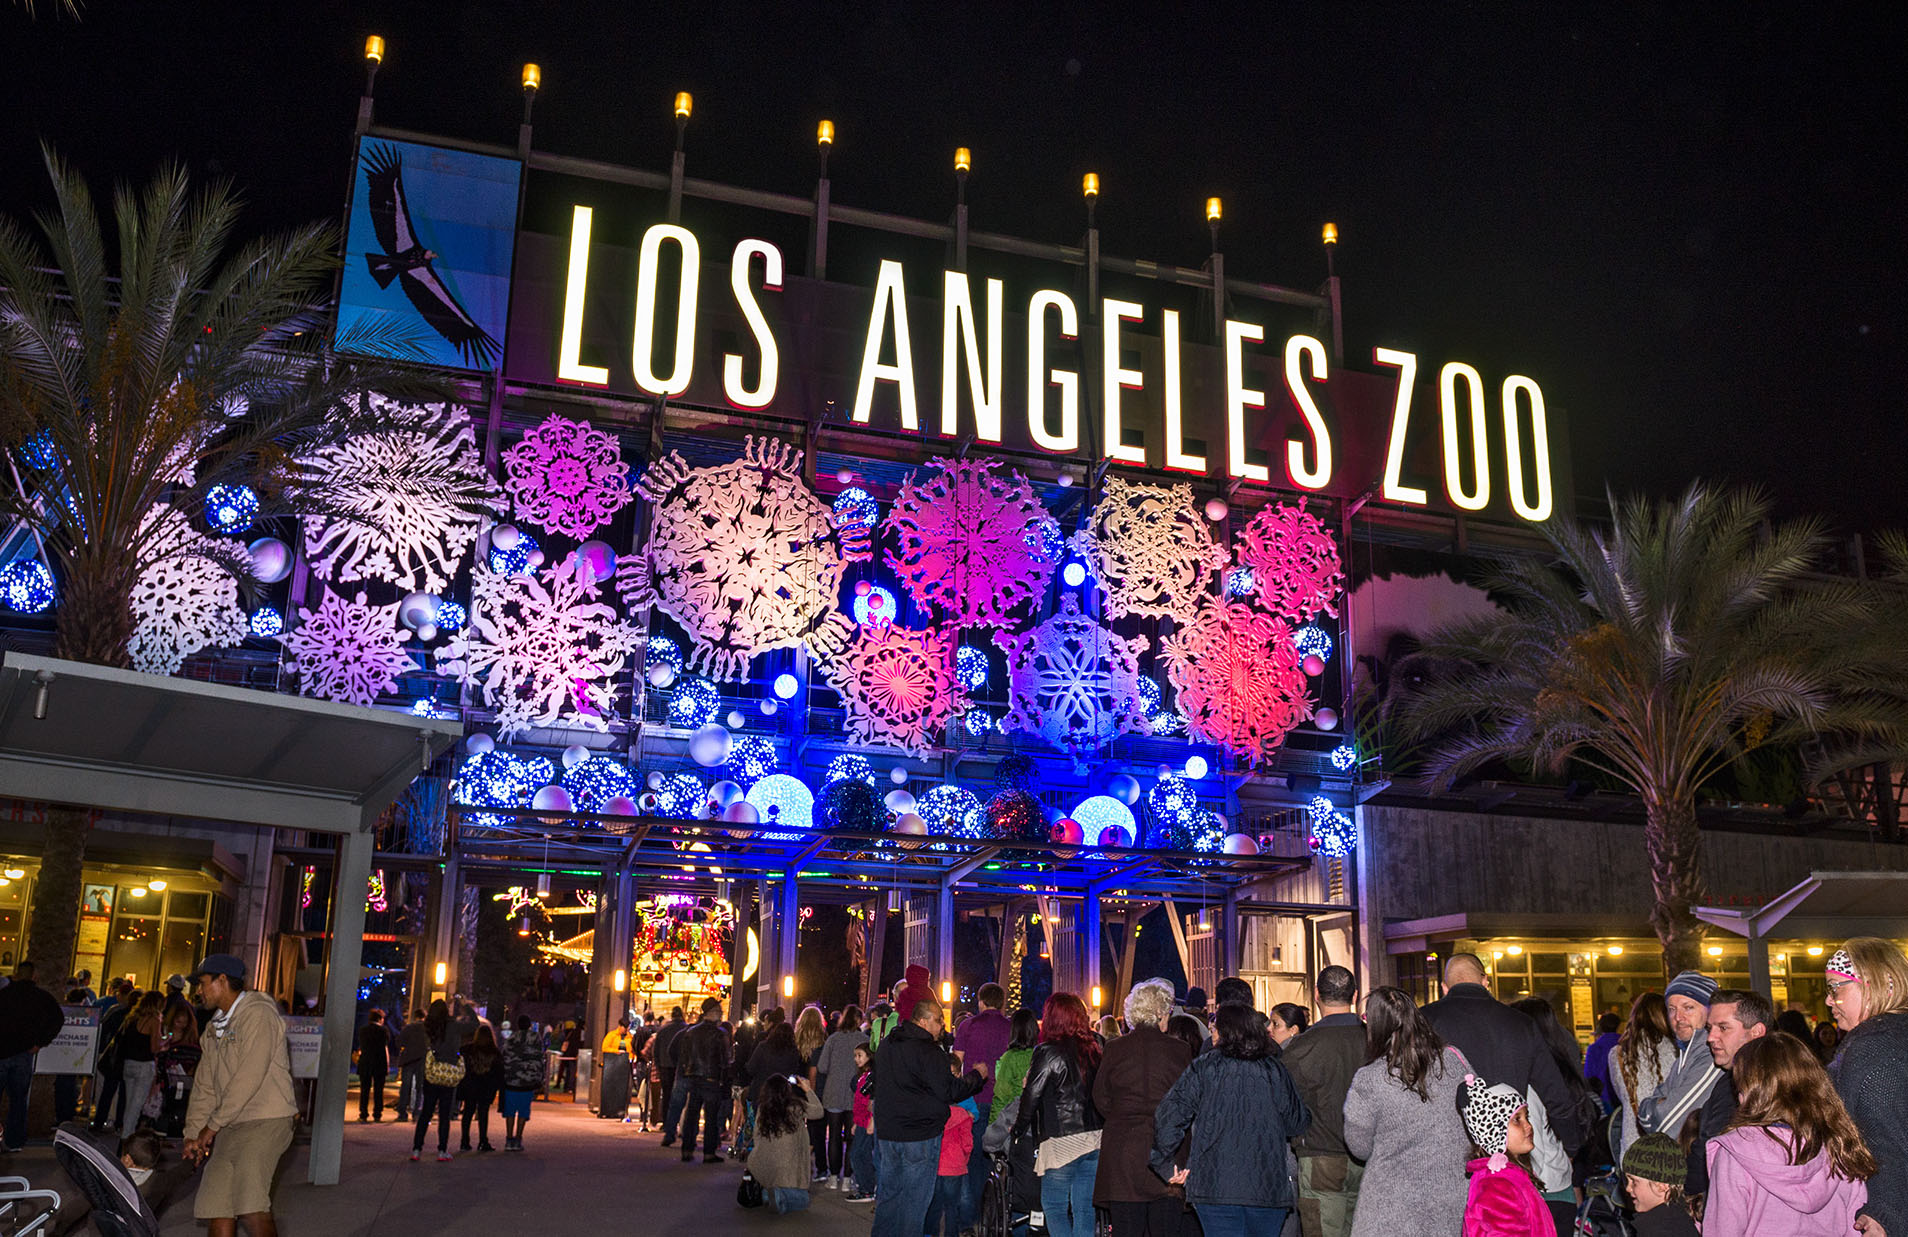 LA Zoo Lights at Night: A Walking Tour of Oohs and Aahs